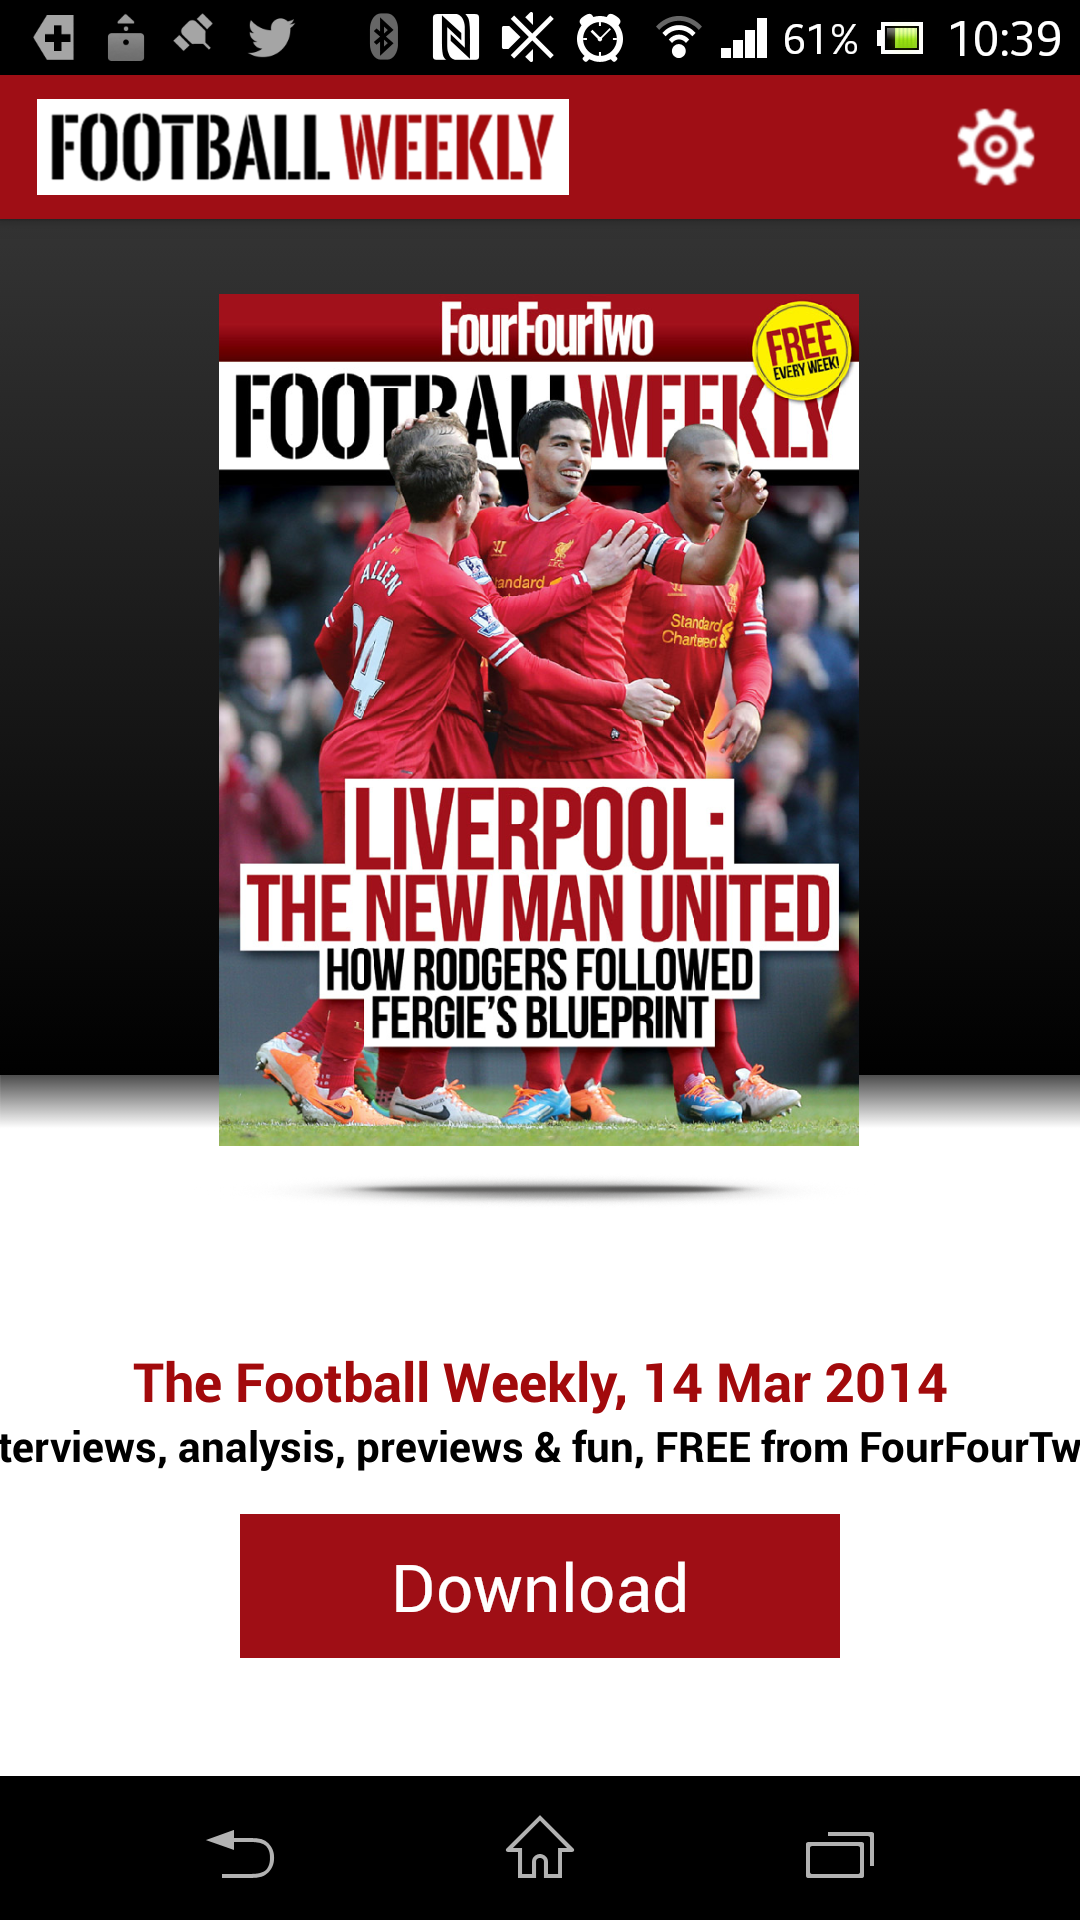 FourFourTwo Launches Free Weekly Footie App